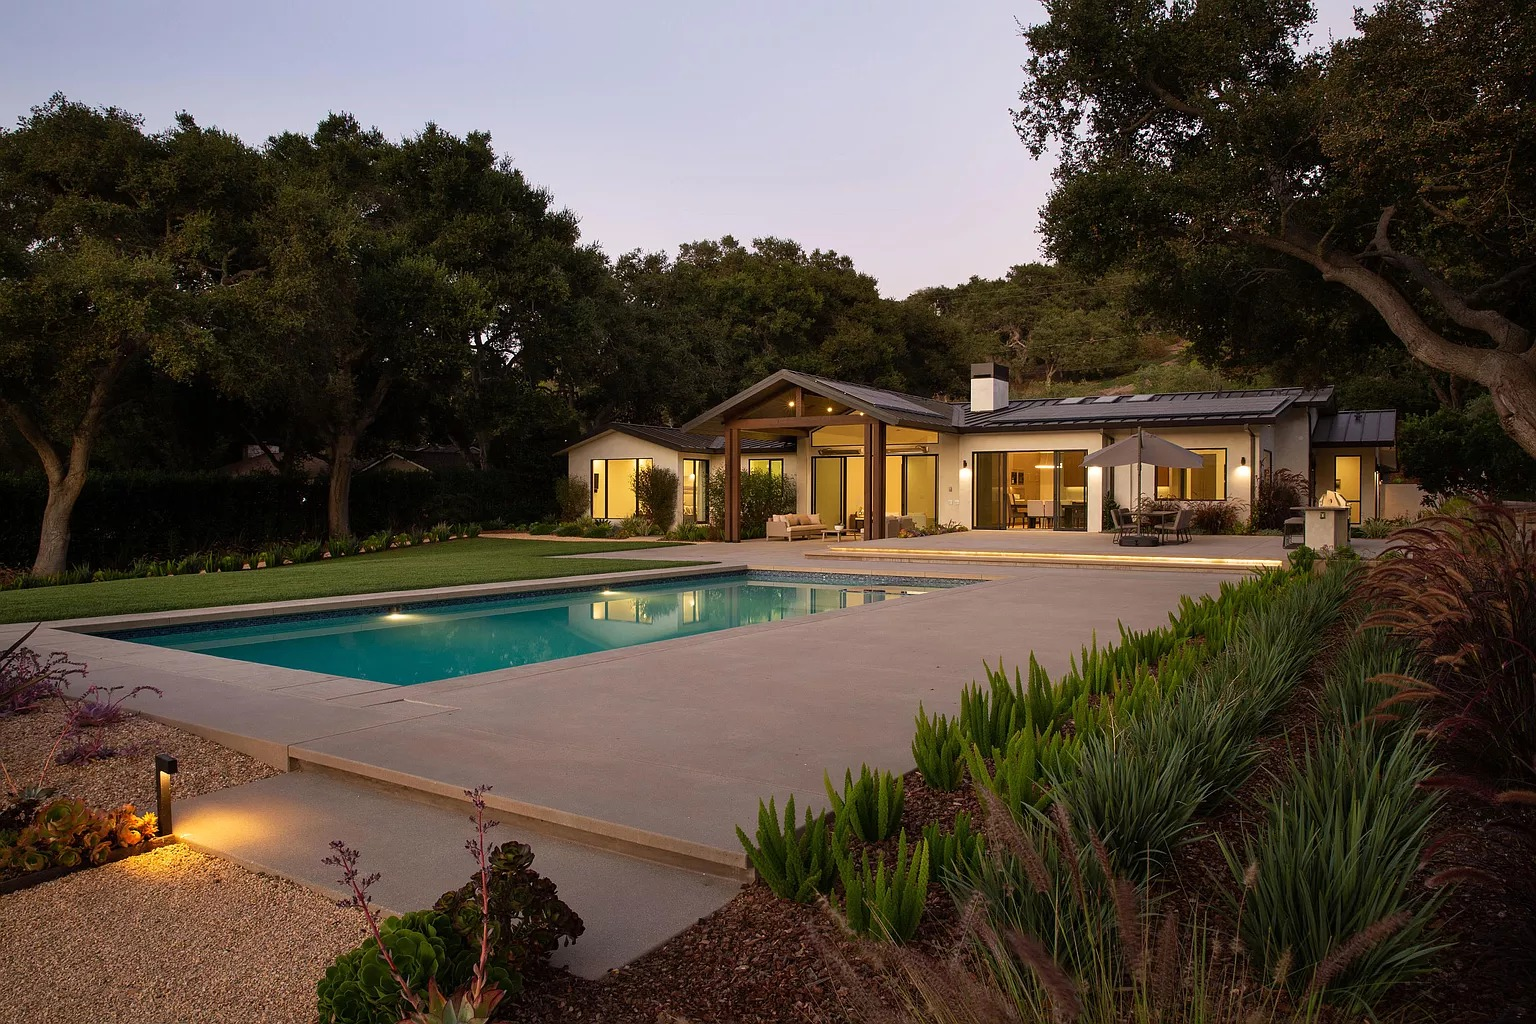 1037 Estrella Dr, Santa Barbara, CA 93110 - $4,795,000 home for sale, house images, photos and pics gallery